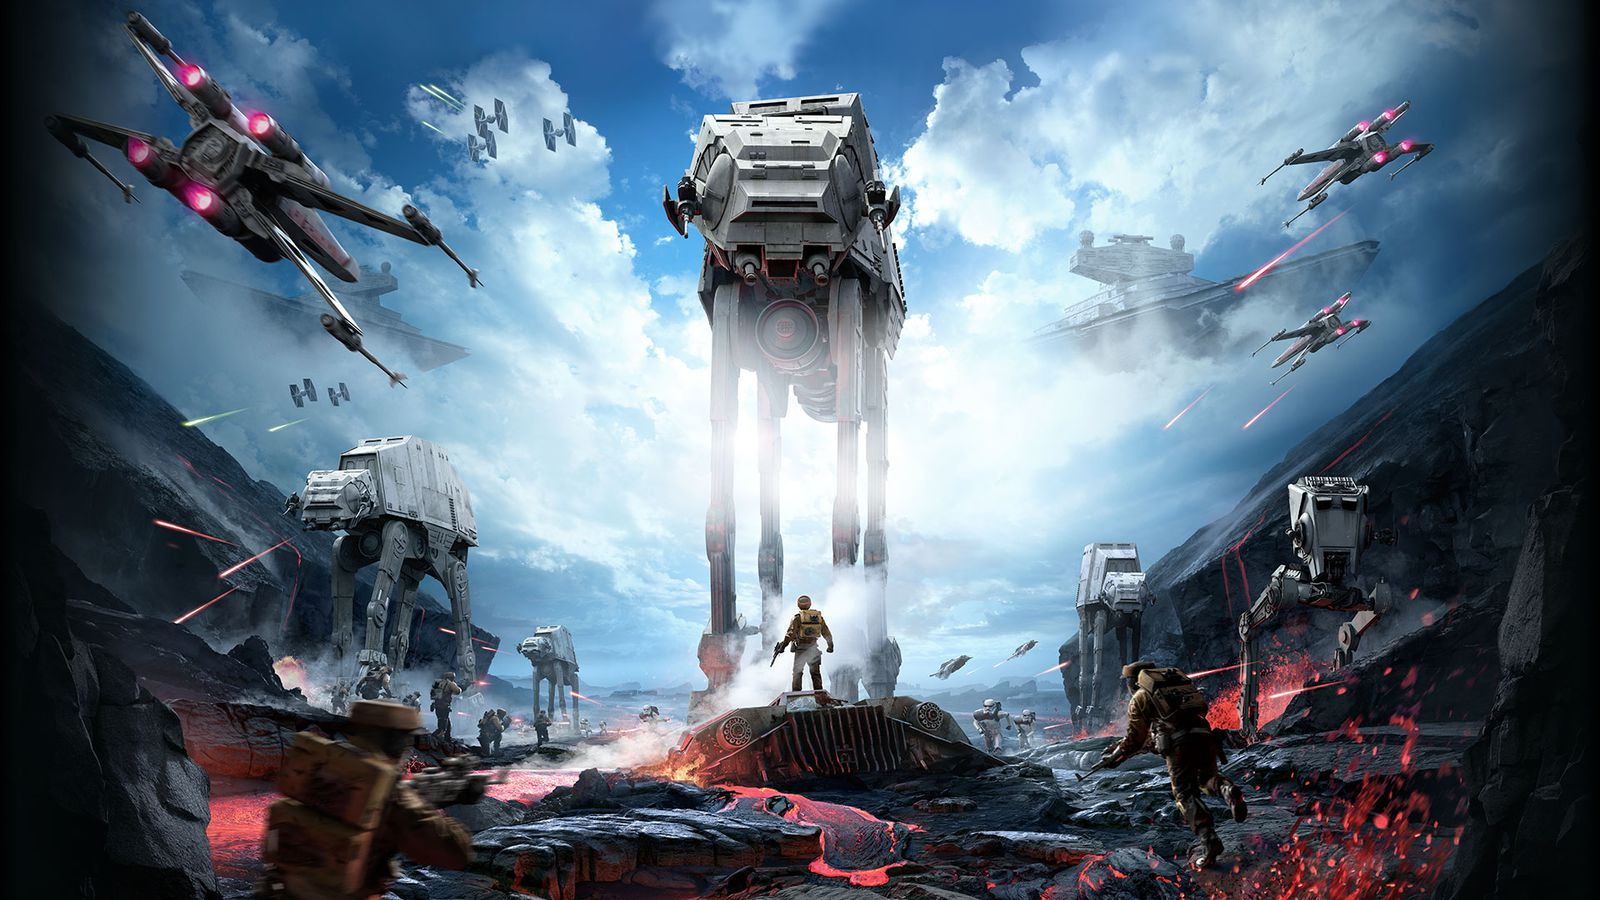 Star Wars Battlefront Sequel Coming In 2017 Polygon